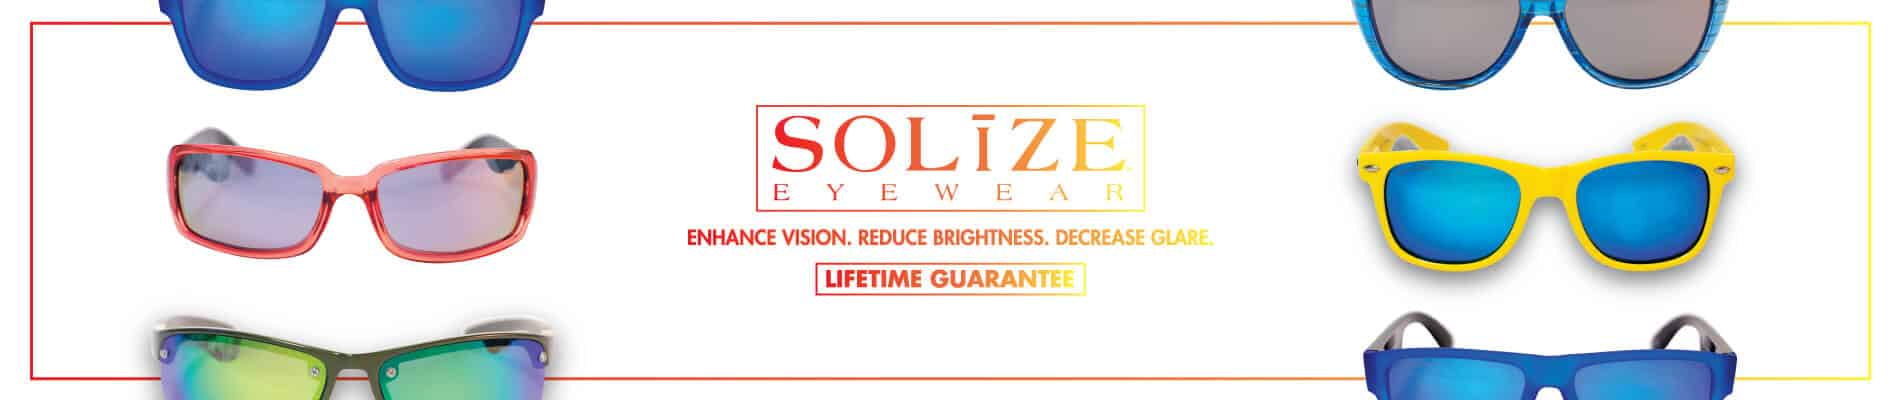 Del Sol Solize Color-Changing Sunglasses